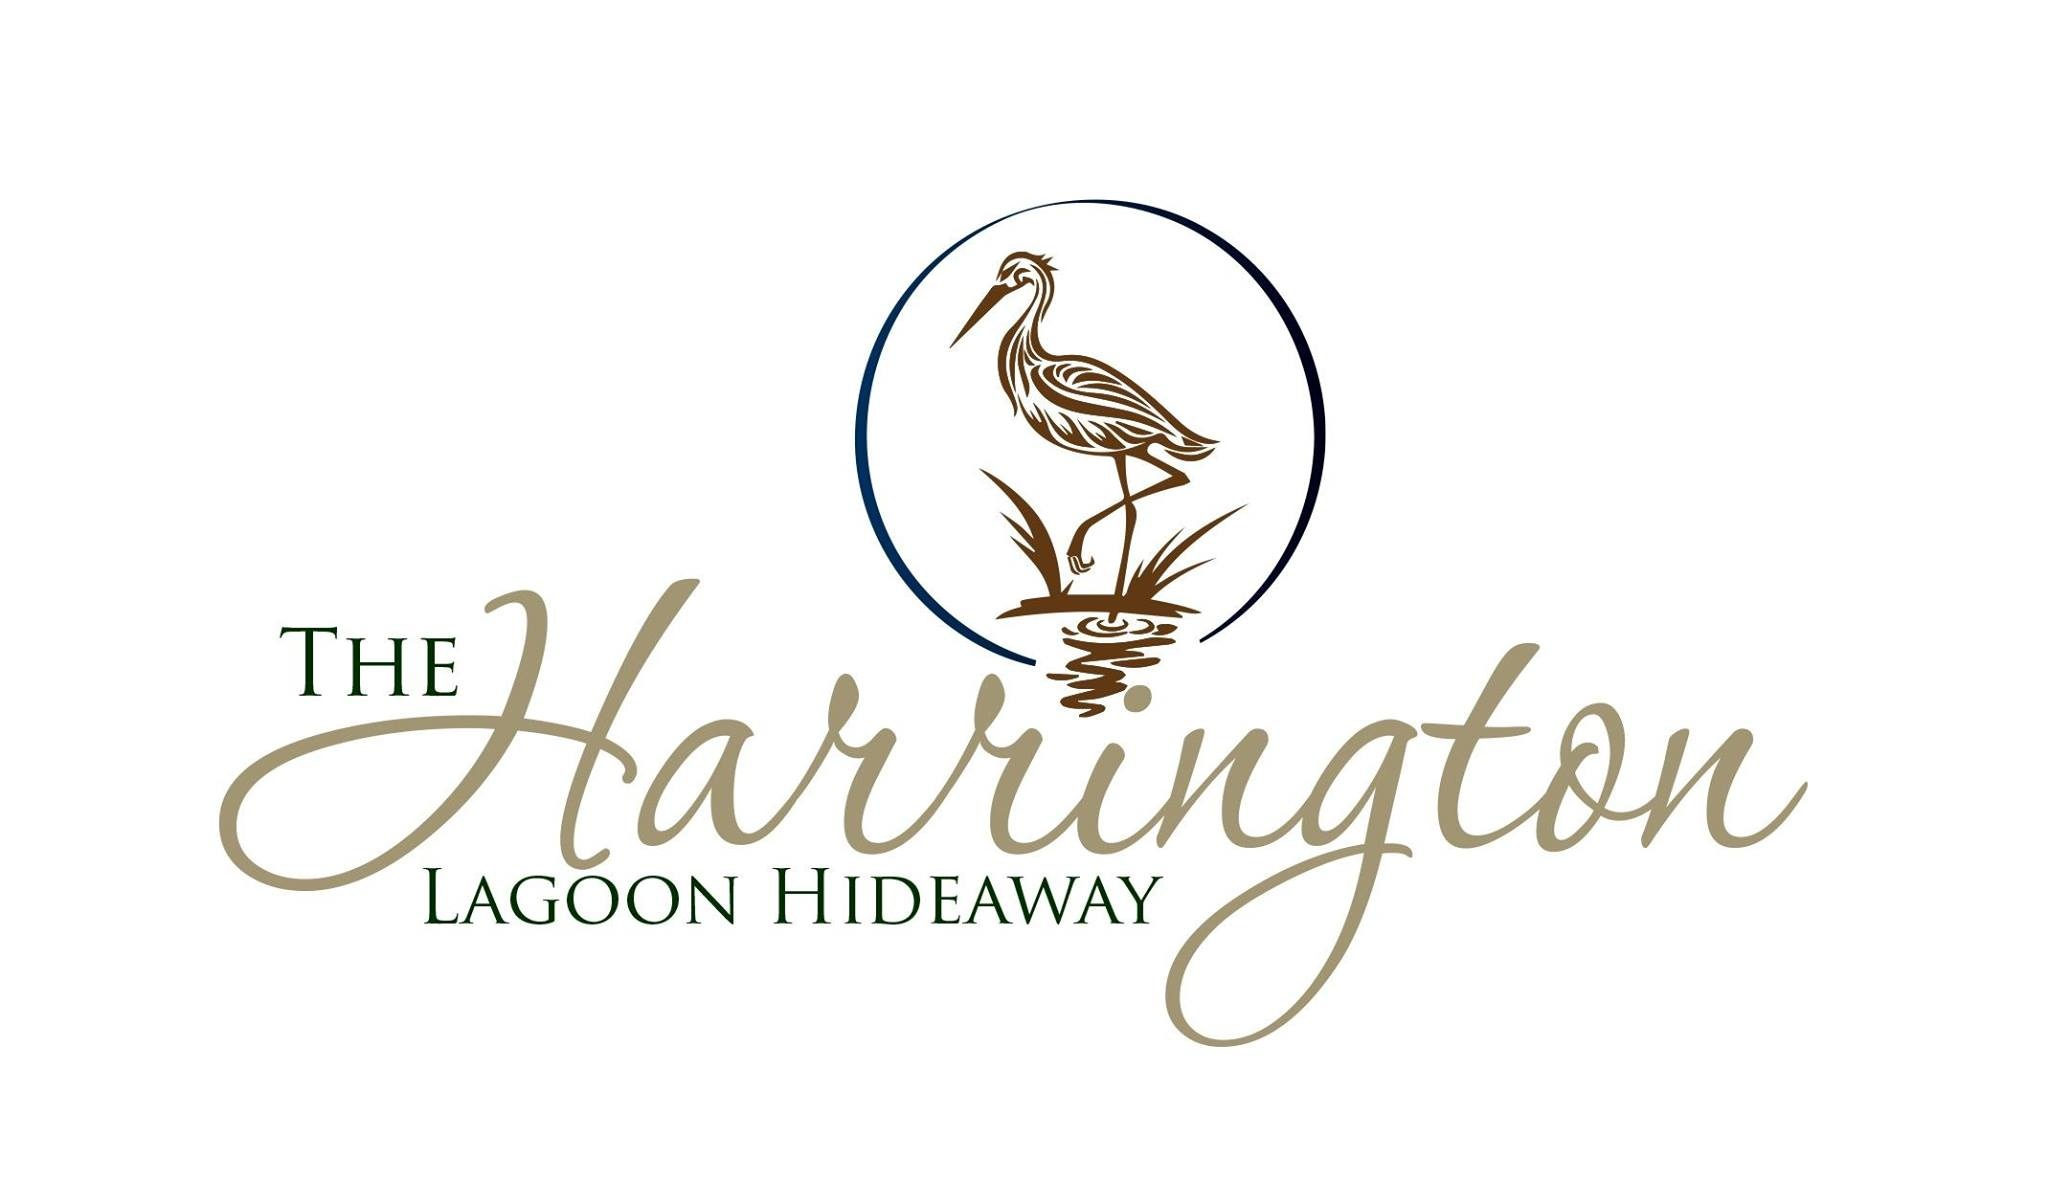 The Harrington Lagoon Hideaway